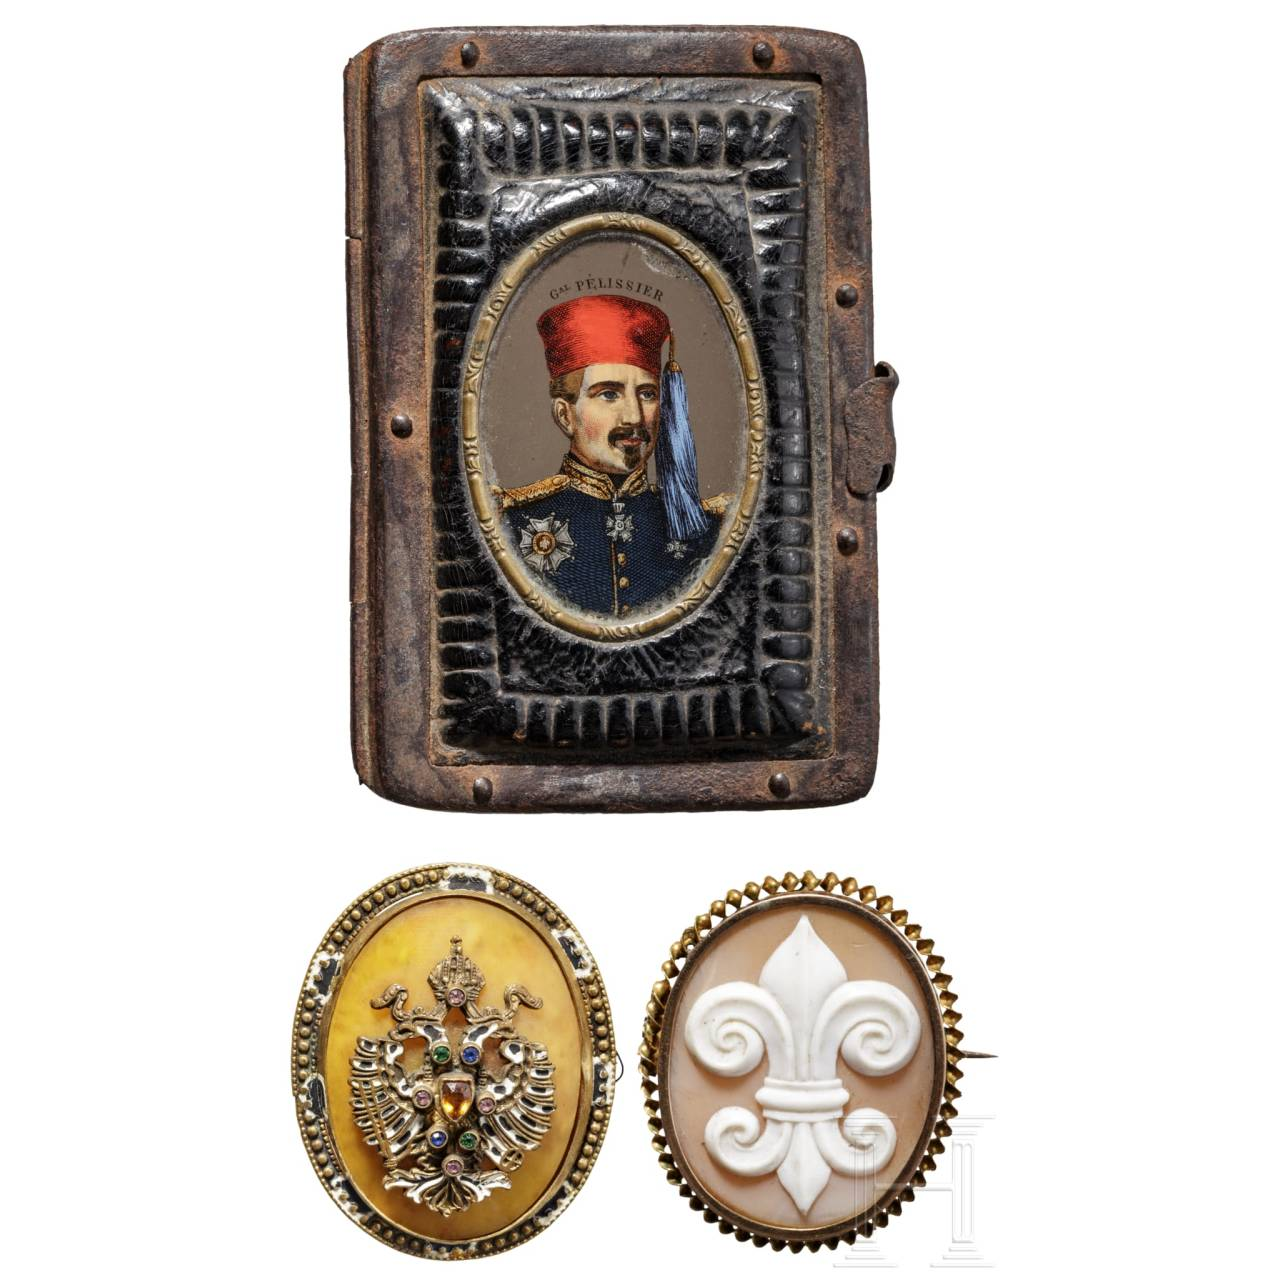 Wallet and two medallions, France / Austria, 19th century